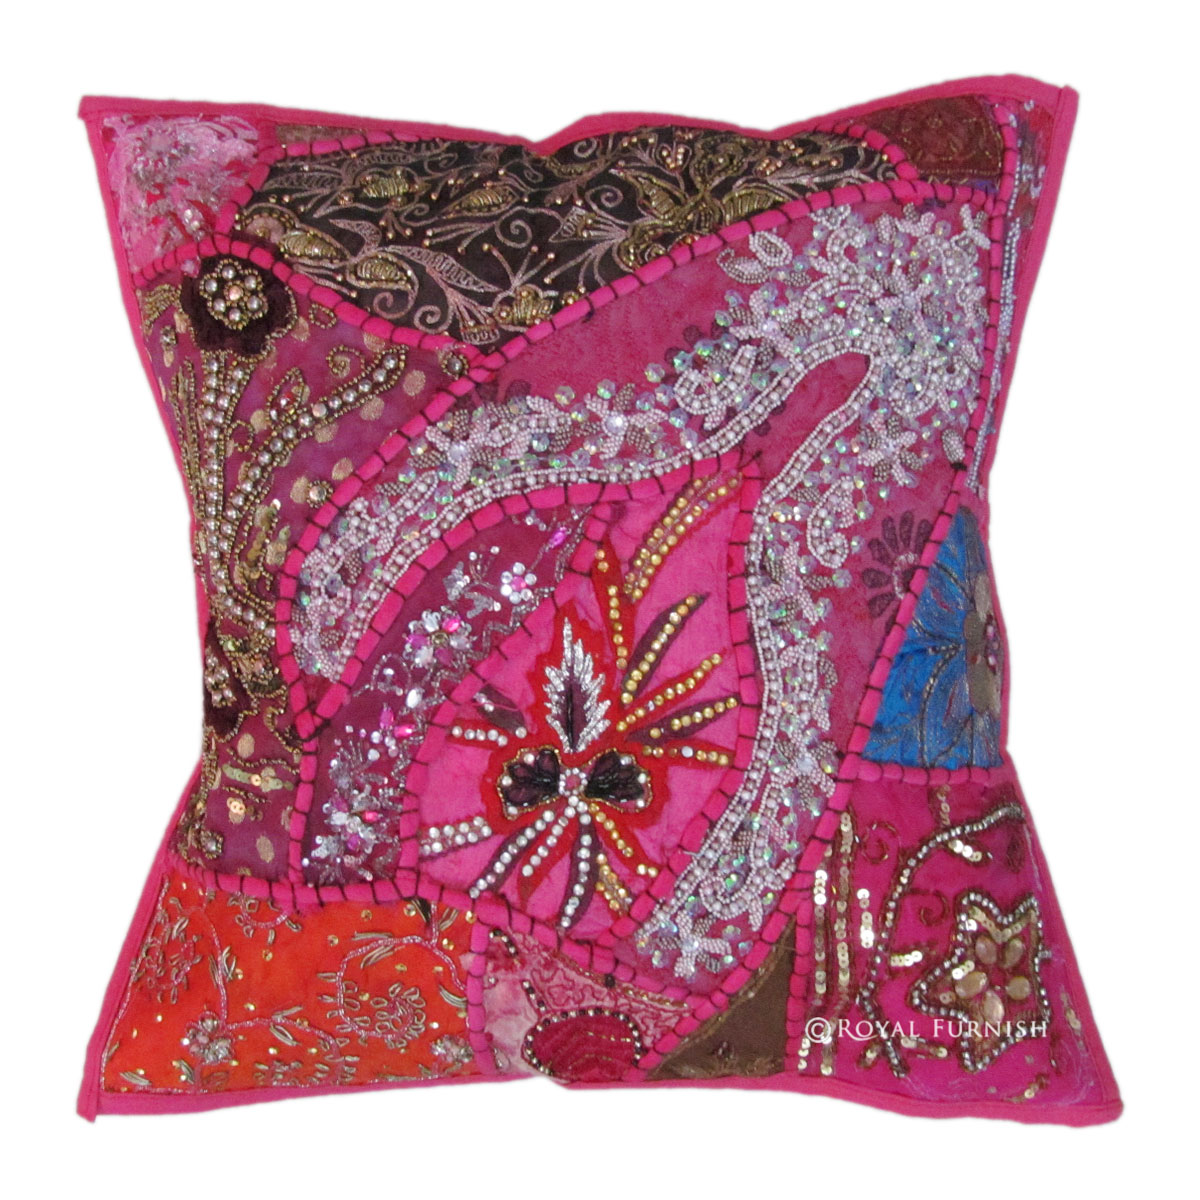 Pink Antique Beaded Patchwork Indian Embroidered Throw Pillow Case Sham - RoyalFurnish.com